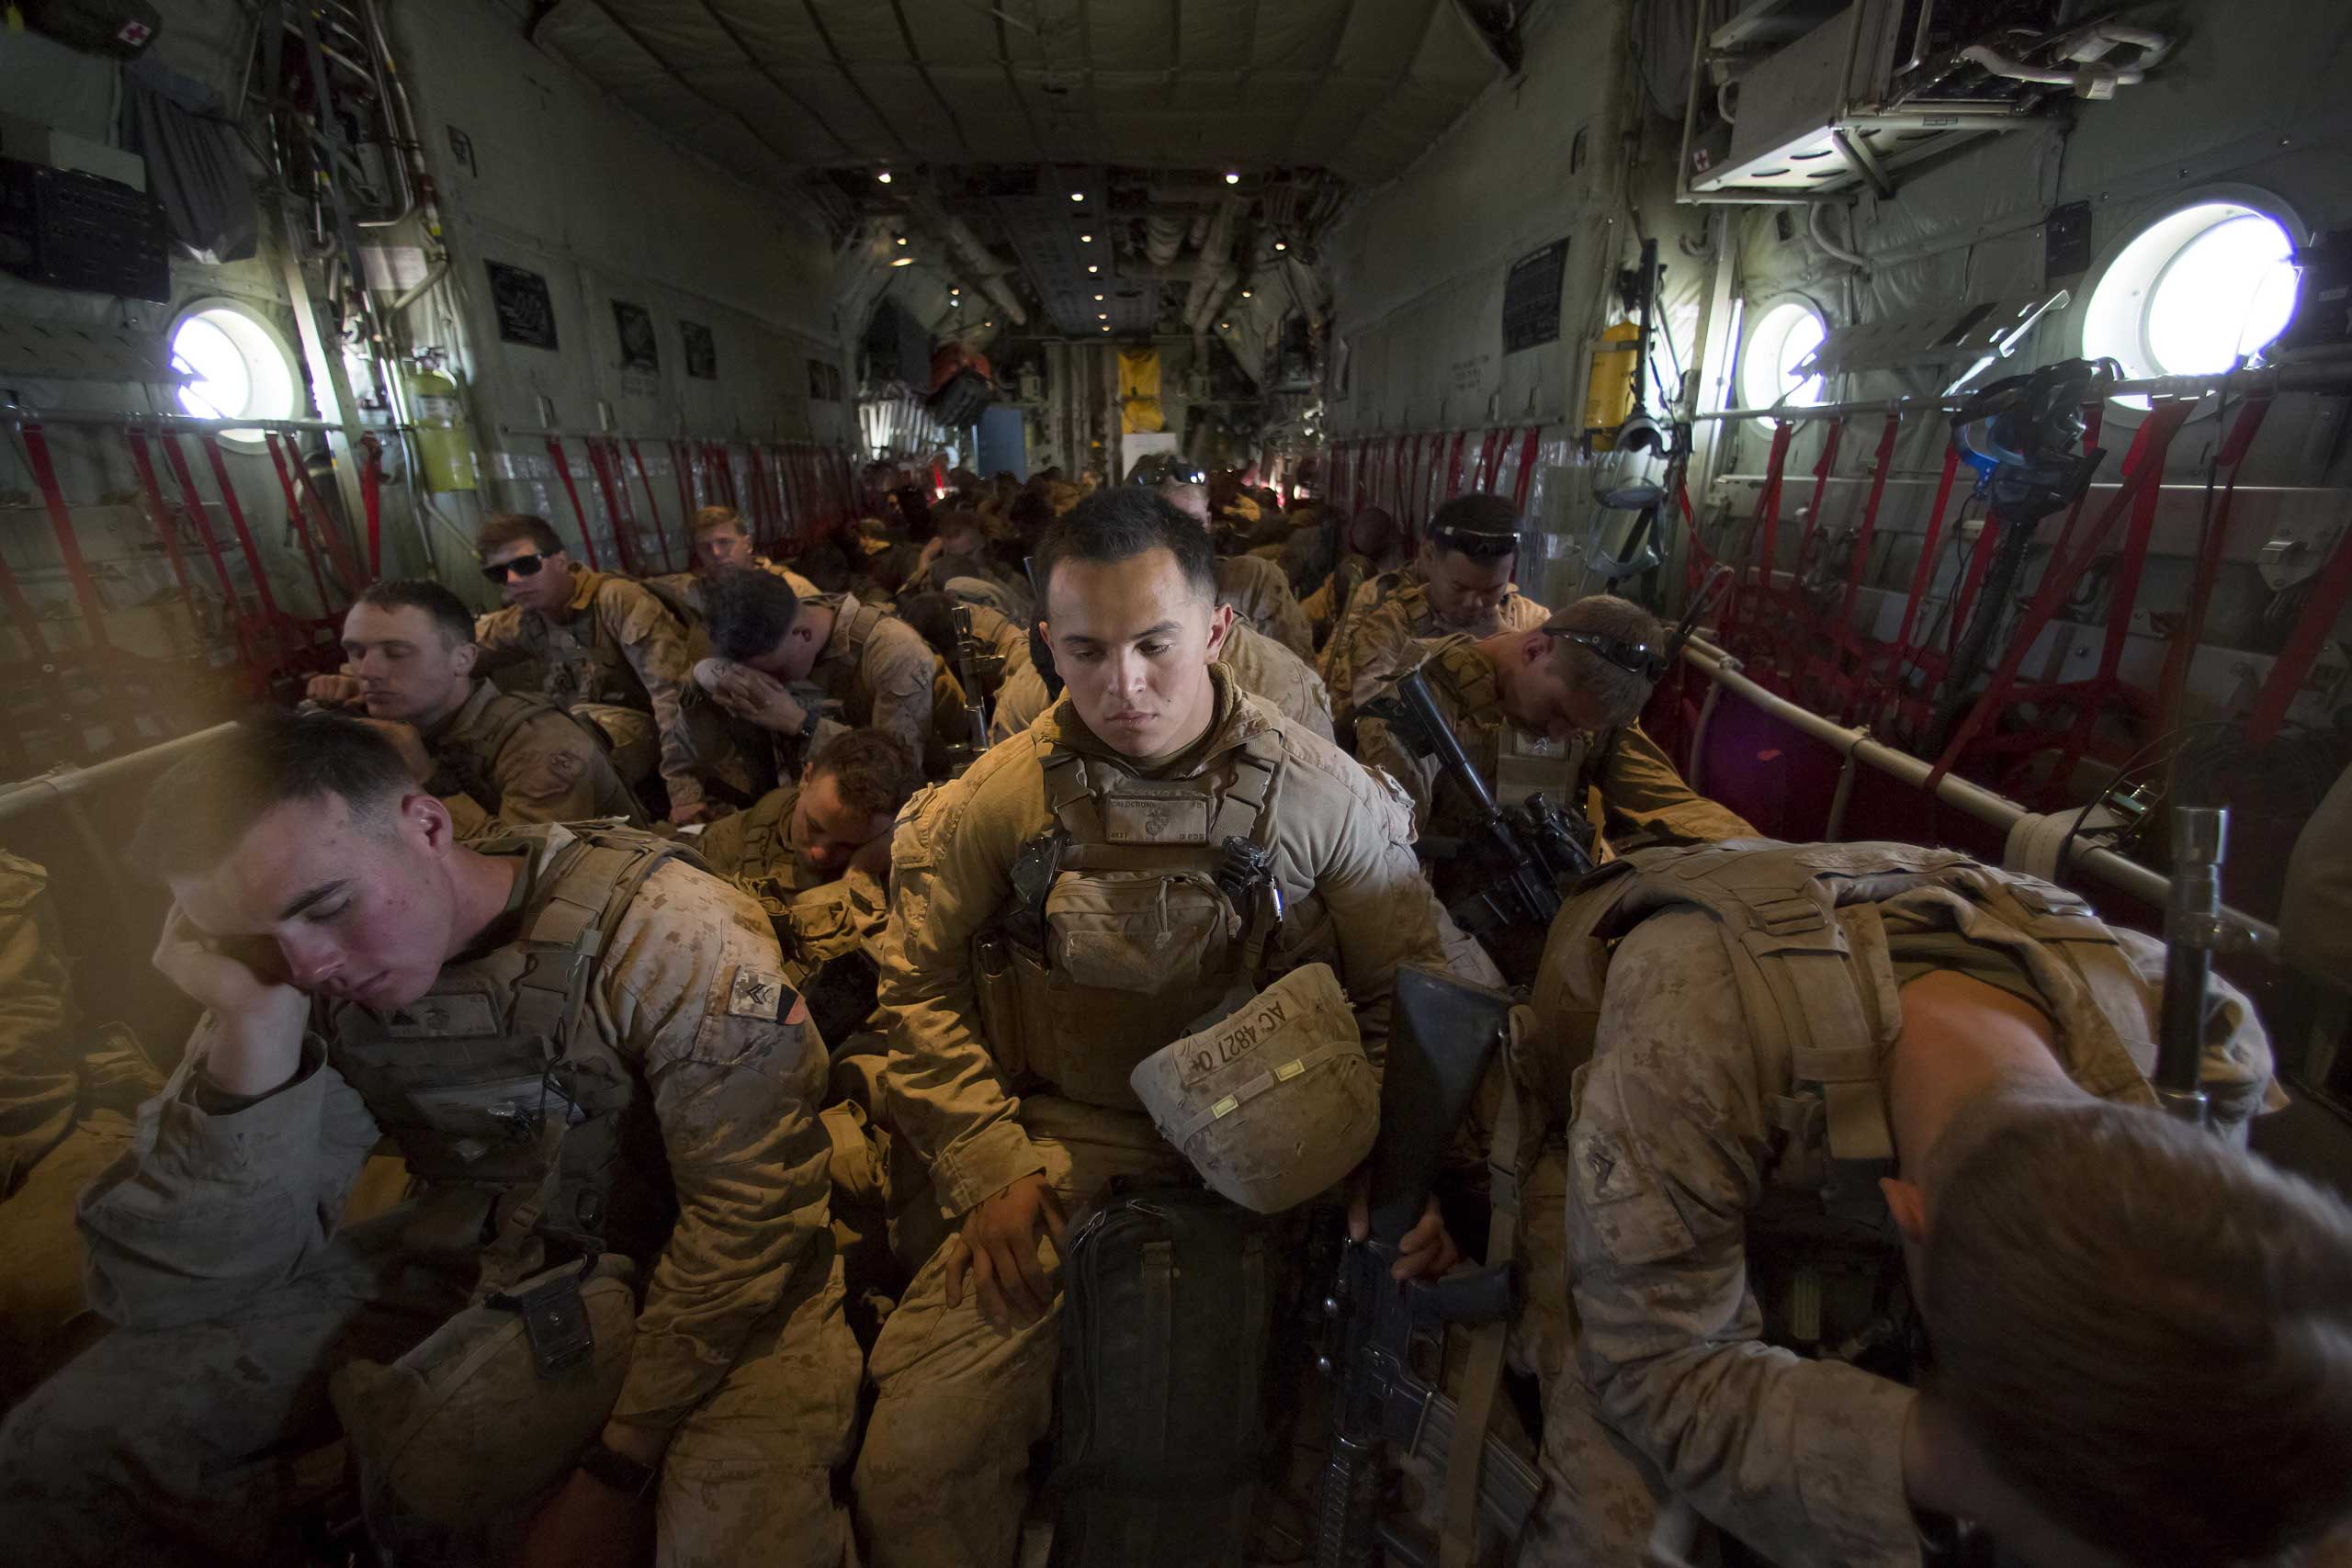 Oct. 26, 2014. After handing over their guard post to the Afghan National Army counterparts, some of the last Marines left on Camp Leatherneck crowd into a C-130 at Bastion Airfield for the official withdrawal of U.S. Marines from Helmand Province, Afghanistan.